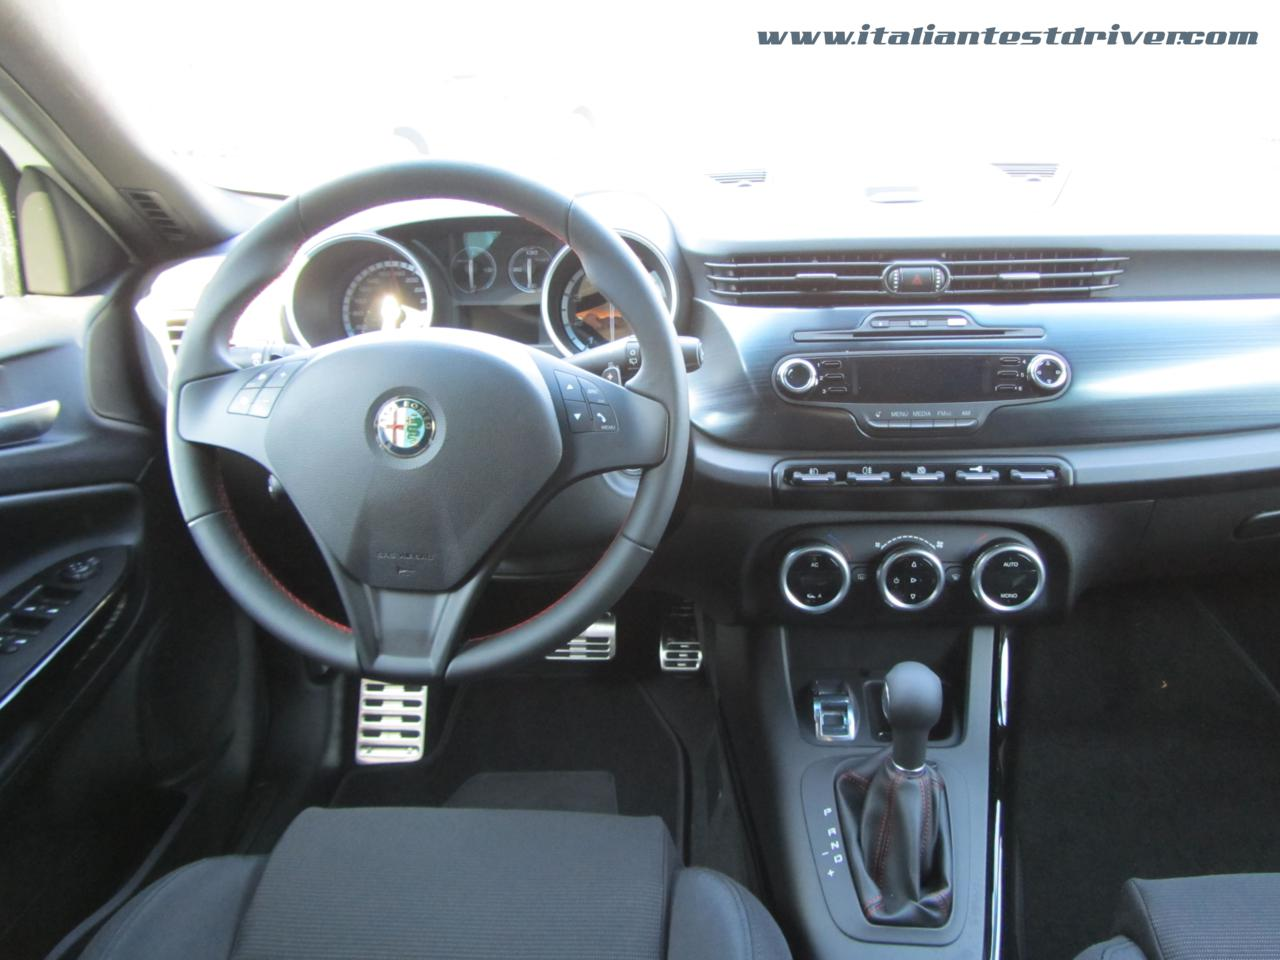 test drive alfa romeo giulietta tct 1 4 tb multiair 170 cv italiantestdriver. Black Bedroom Furniture Sets. Home Design Ideas